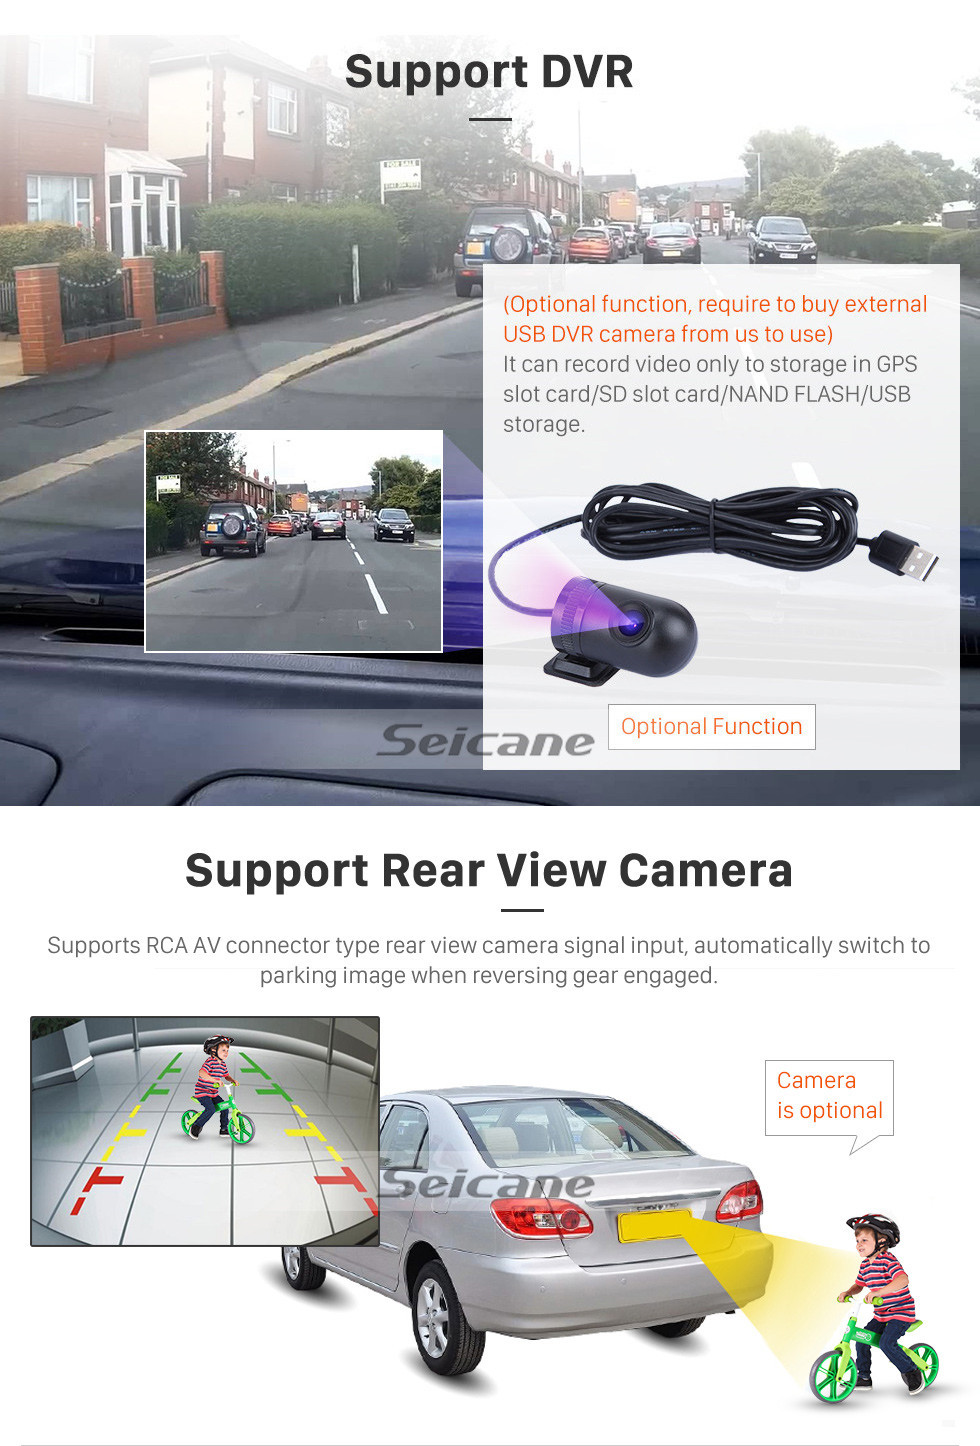 Seicane OEM 9 inch Android 10.0 Radio GPS navigation system for 2006-2014 Mitsubishi OUTLANDER Bluetooth HD 1024*600 touch screen OBD2 DVR TV 1080P Video 4G WIFI Steering Wheel Control USB backup camera Mirror link